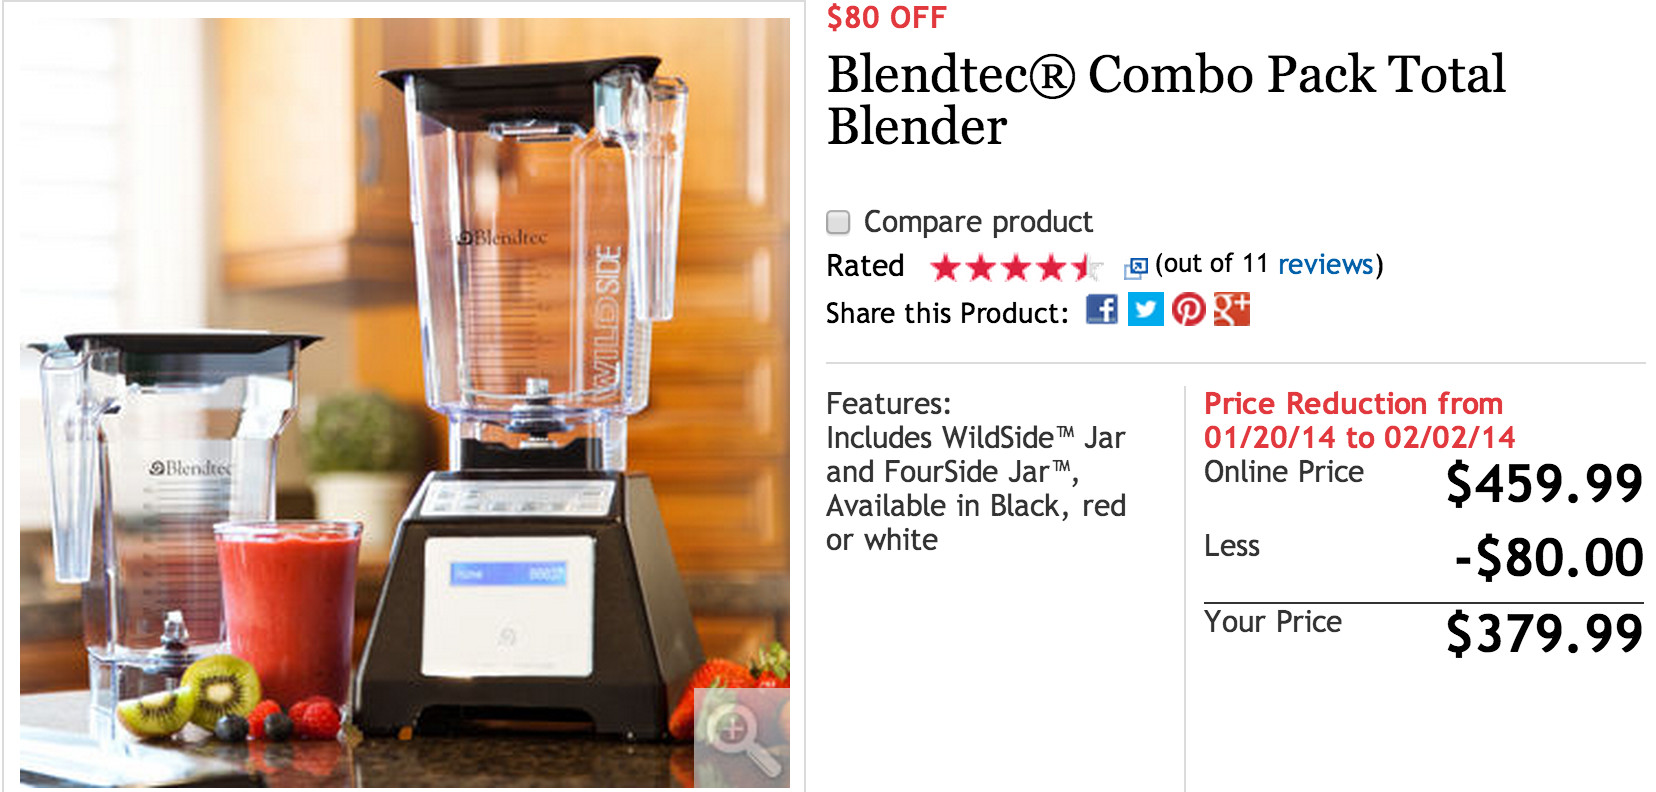 The official store of Blendtec Promo Code & Deals offers the best prices on Home & Garden and more. This page contains a list of all Blendtec Promo Code & Deals Store coupon codes that are available on Blendtec Promo Code & Deals store.